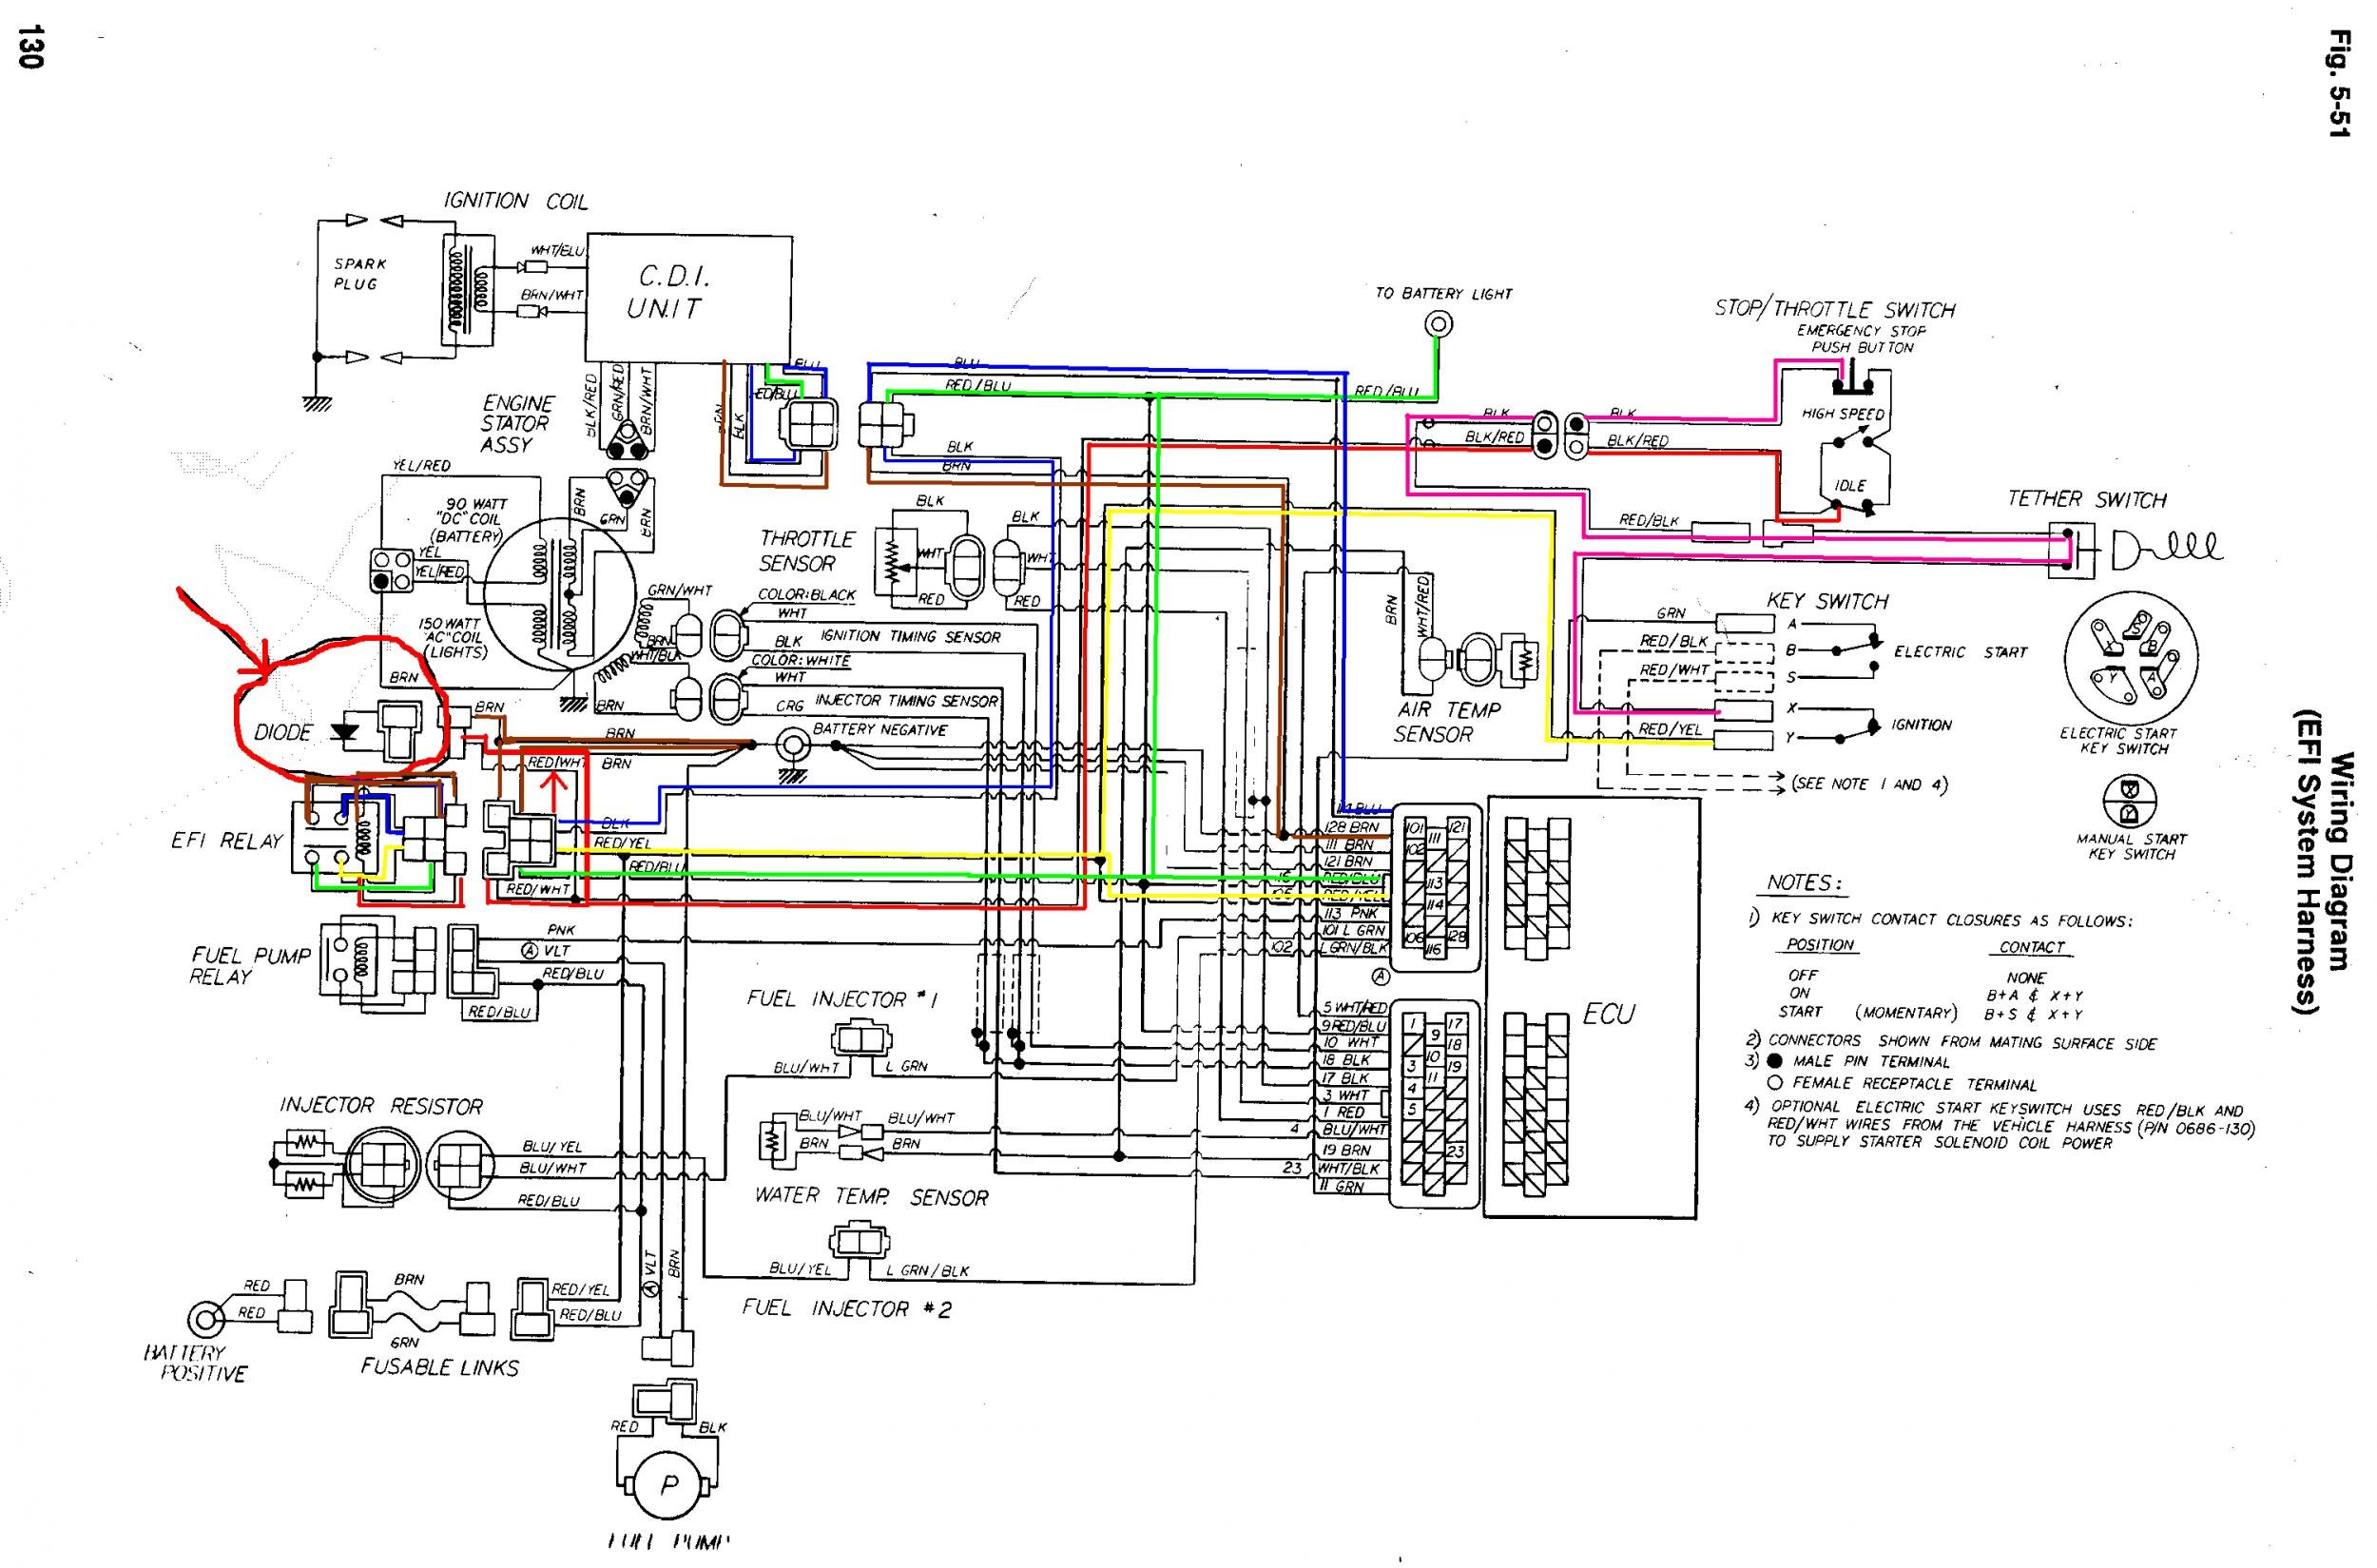 wiring diagram winch upstairs and downstairs